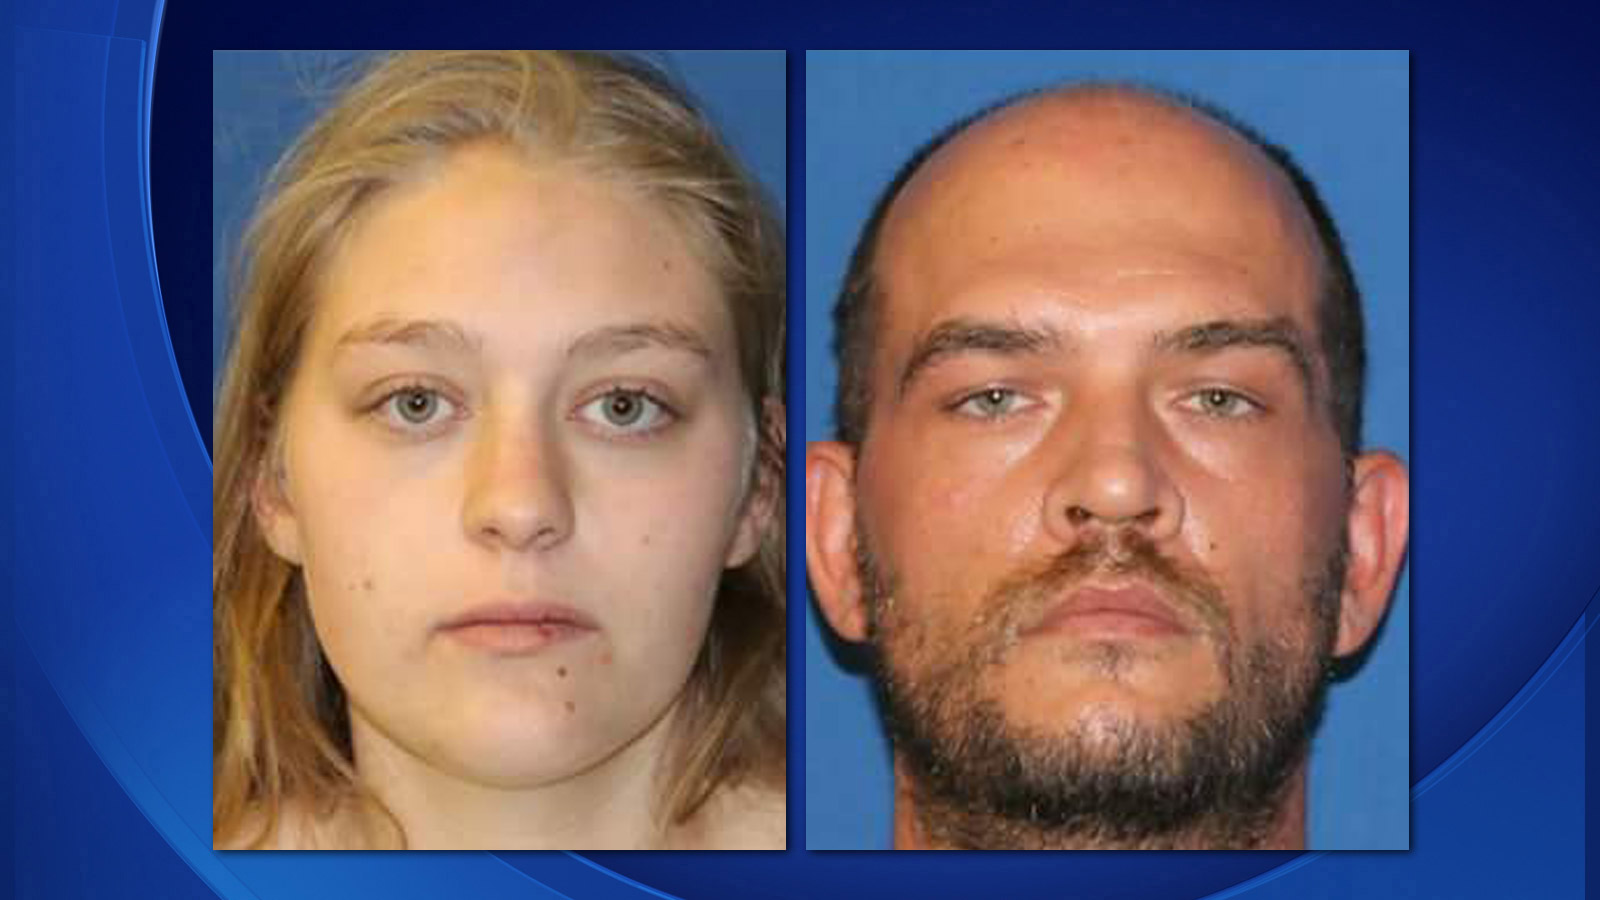 Courtney Plante and Sean Overstreet (credit: Fremont County)